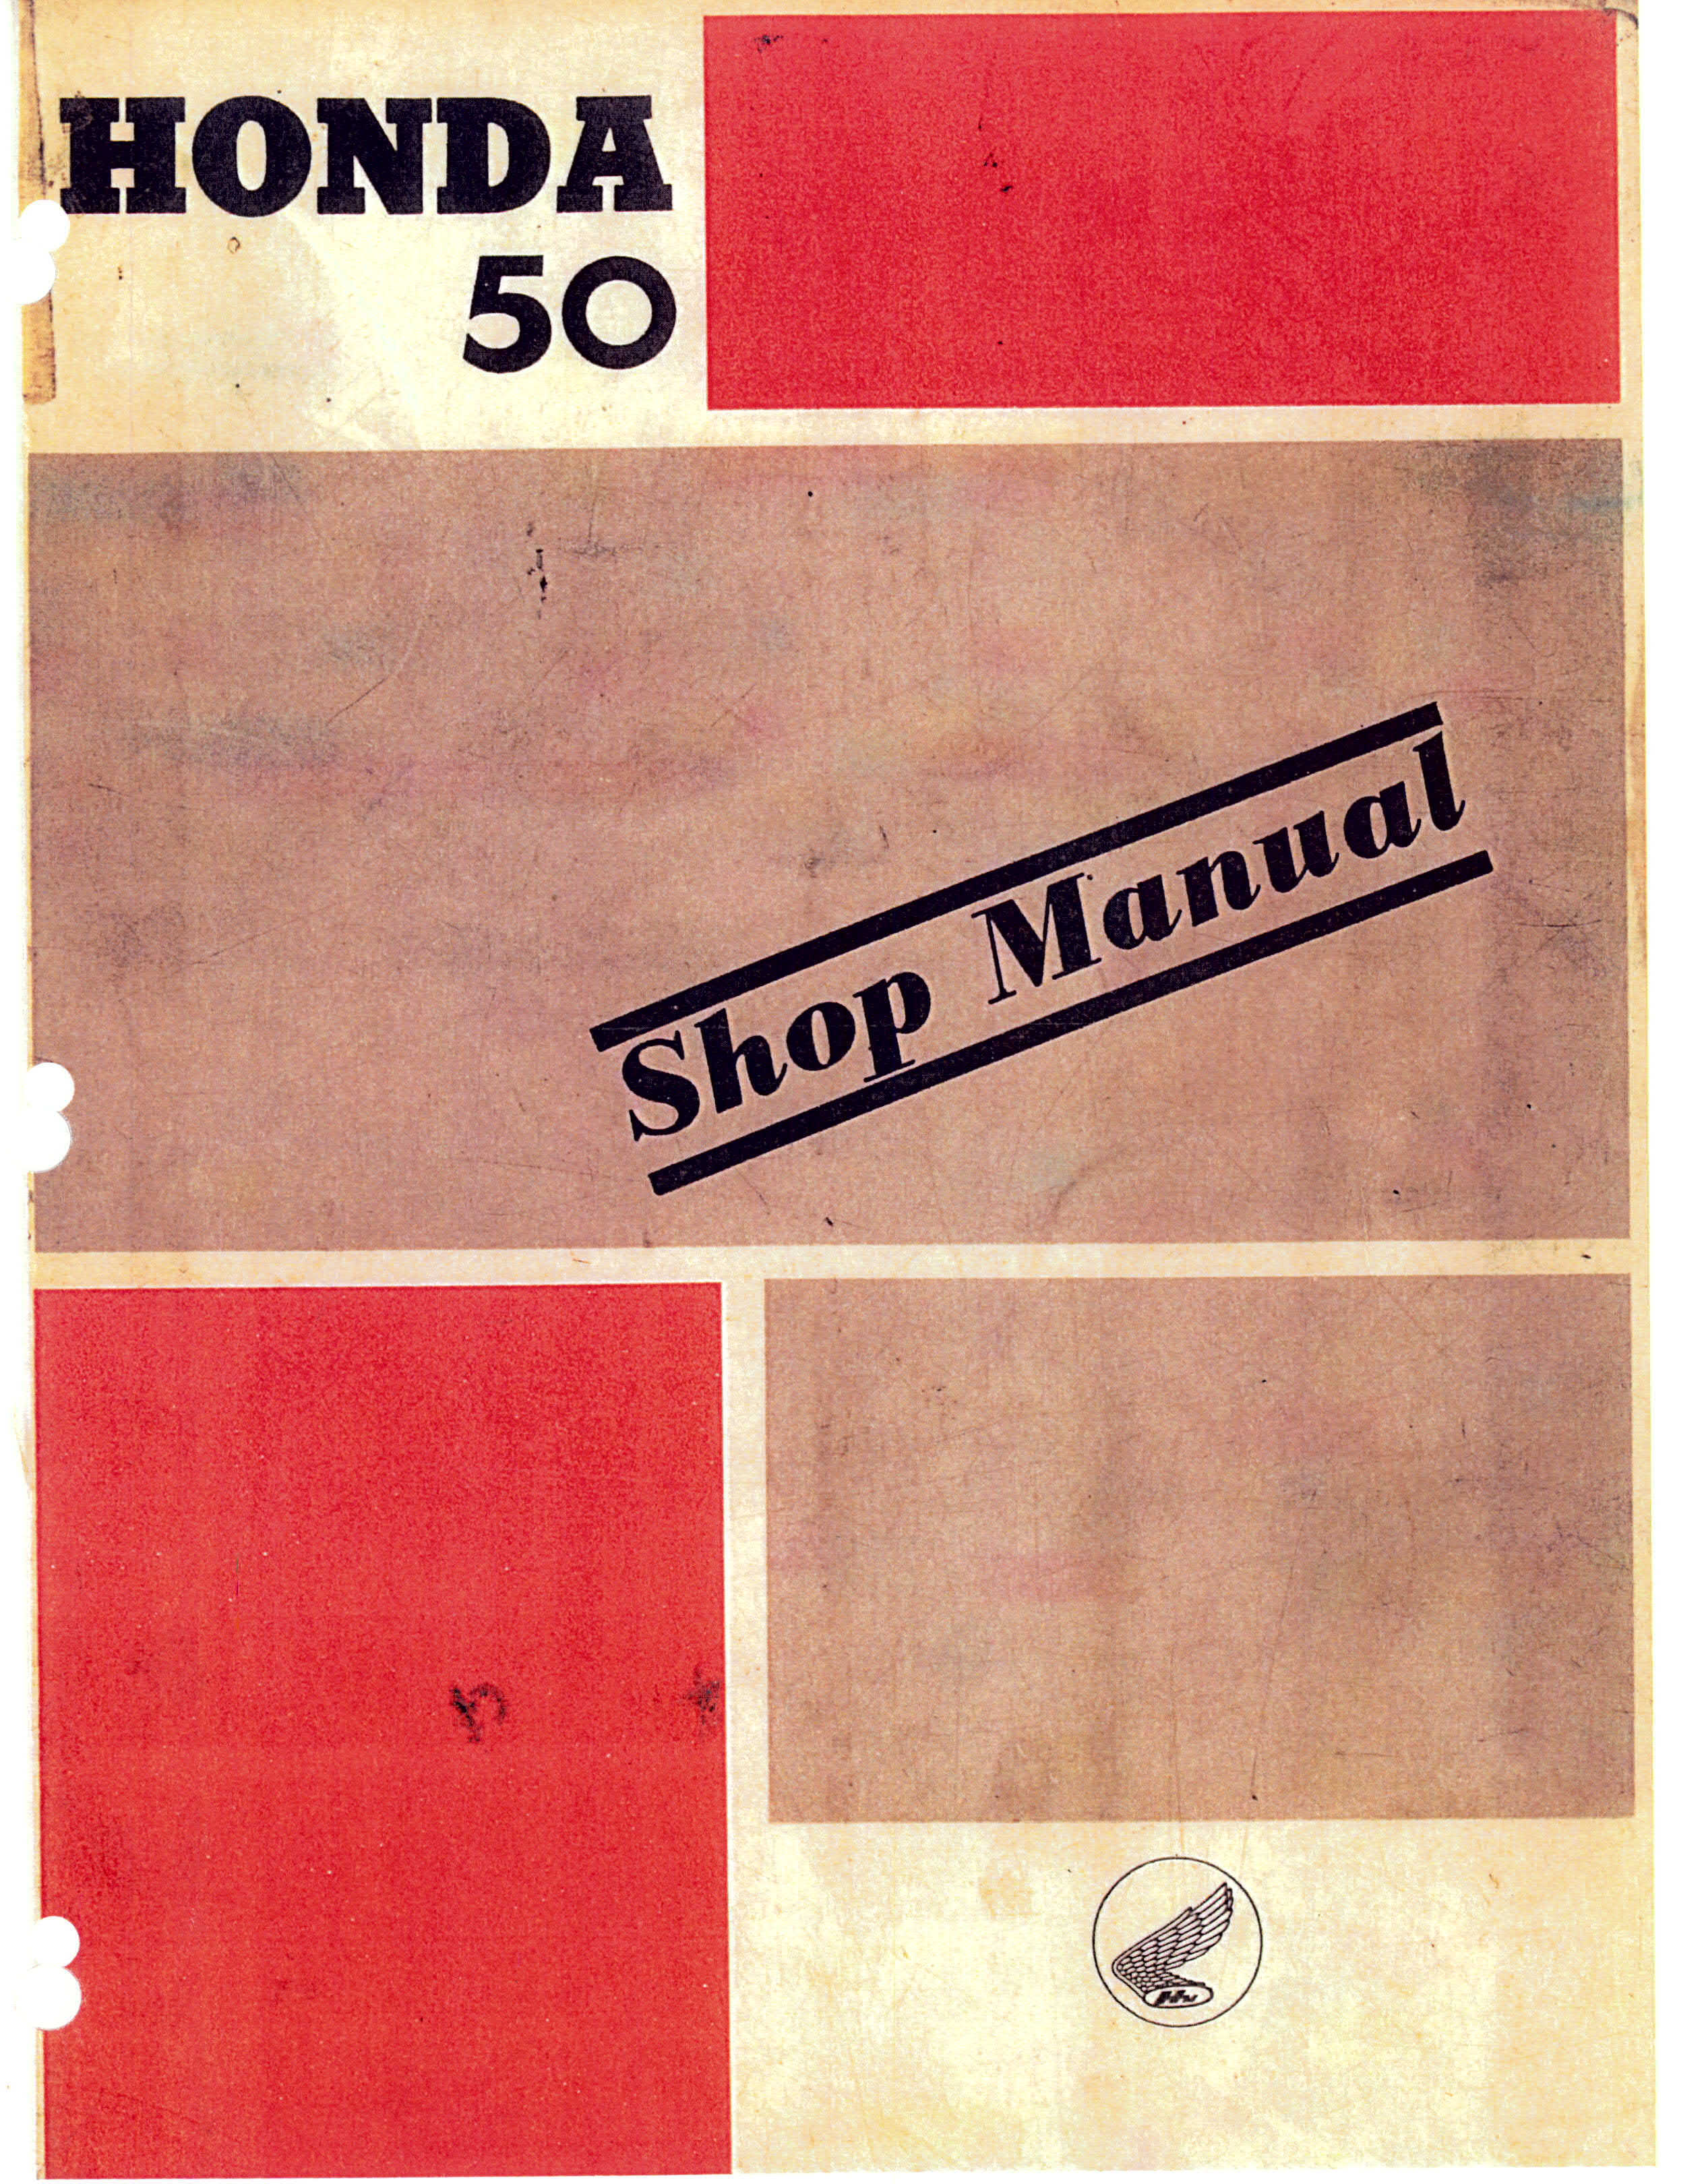 Workshop manual for Honda C111 (1961)